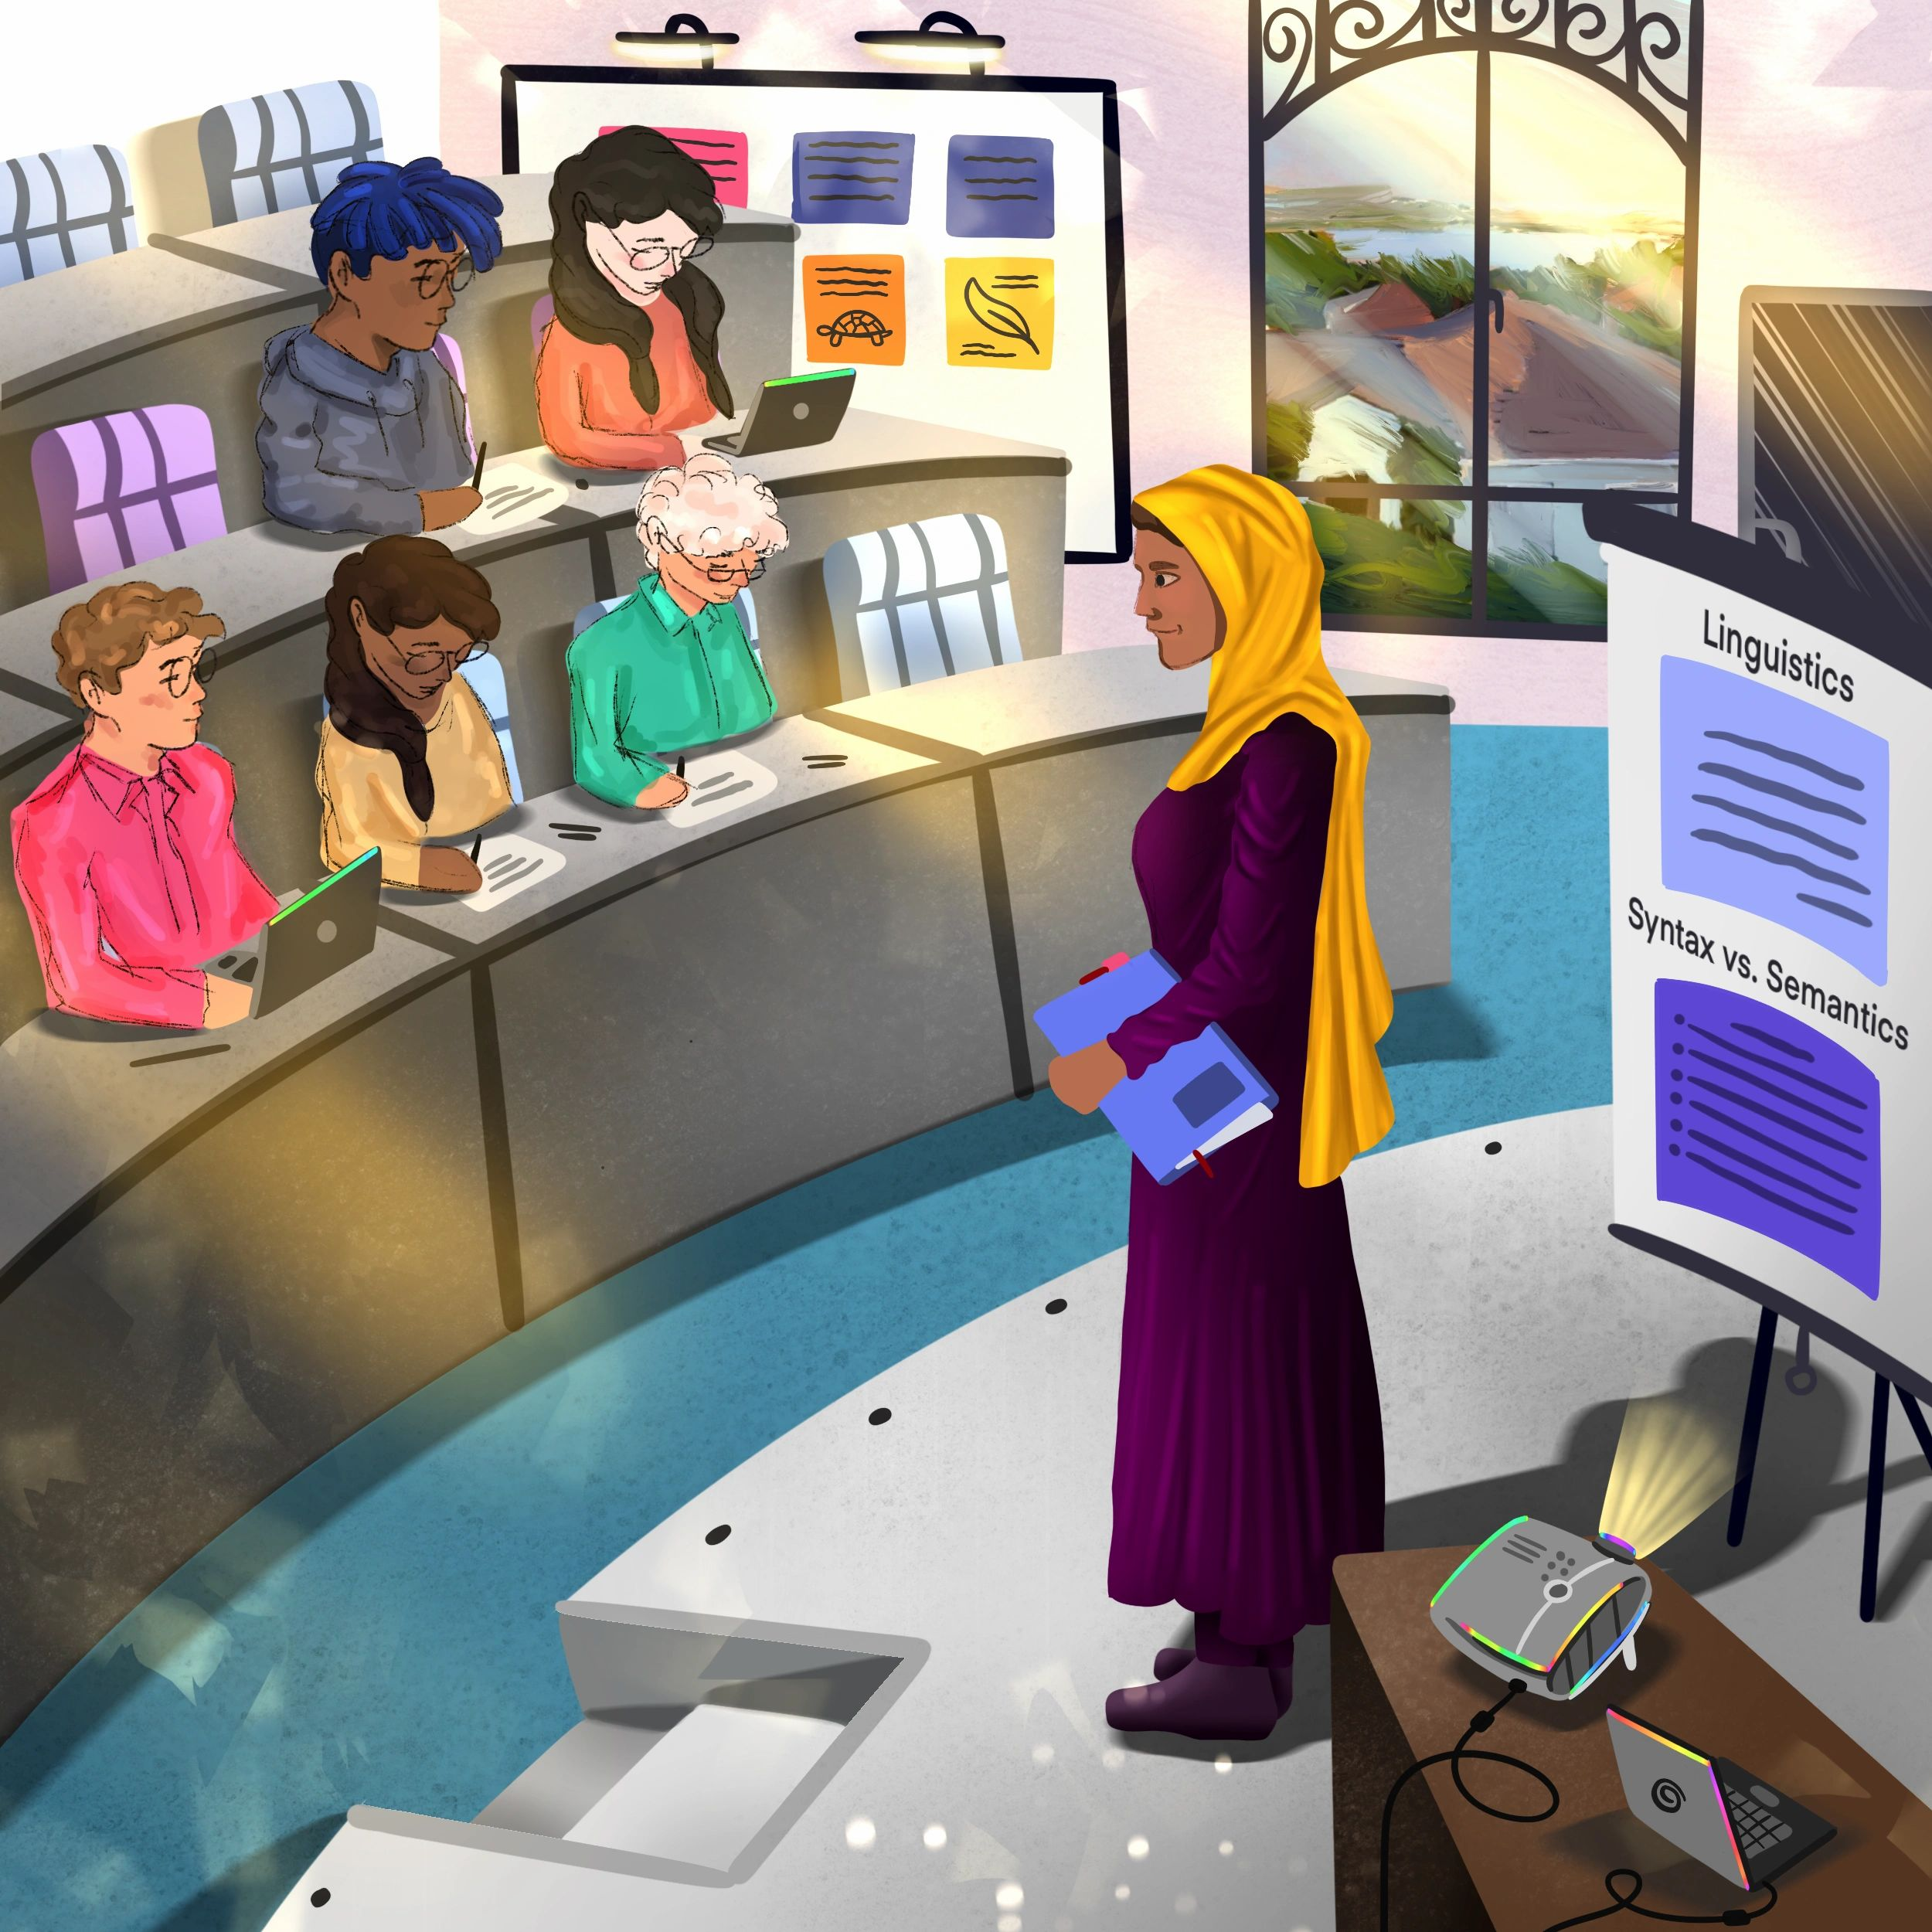 A brightly colored illustration showing a middle-aged woman wearing a purple dress and yellow headscarf. She is teaching a college lecture on Linguistics while standing in front of five seated students taking notes in a lecture hall